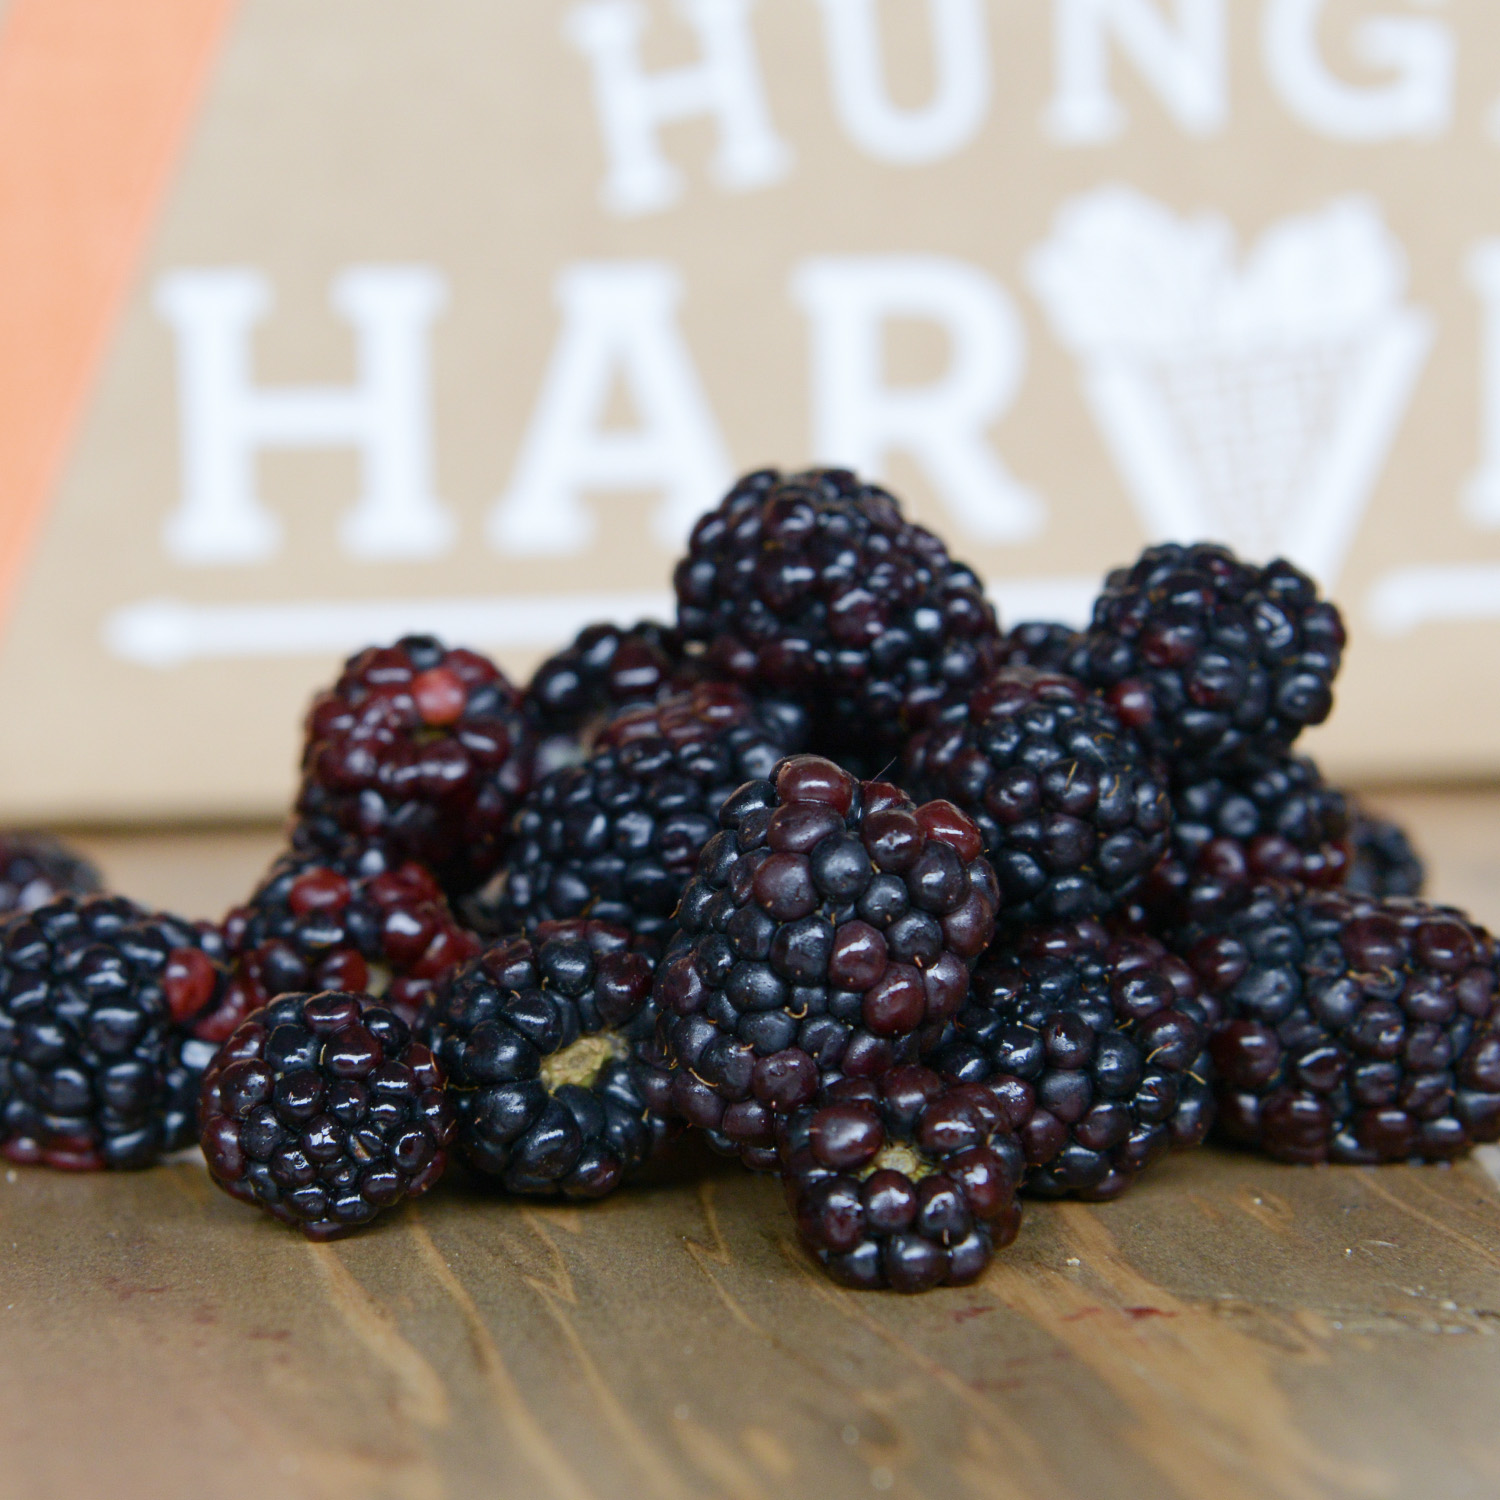 Blackberry Thyme MargaritaUsing fresh fruit as a natural sweetener is a refreshing way to use up blackberries (and plums if you have them) that are on their last legs, the softness also makes the mashing easier. - Find the recipe at: Half Baked Harvest